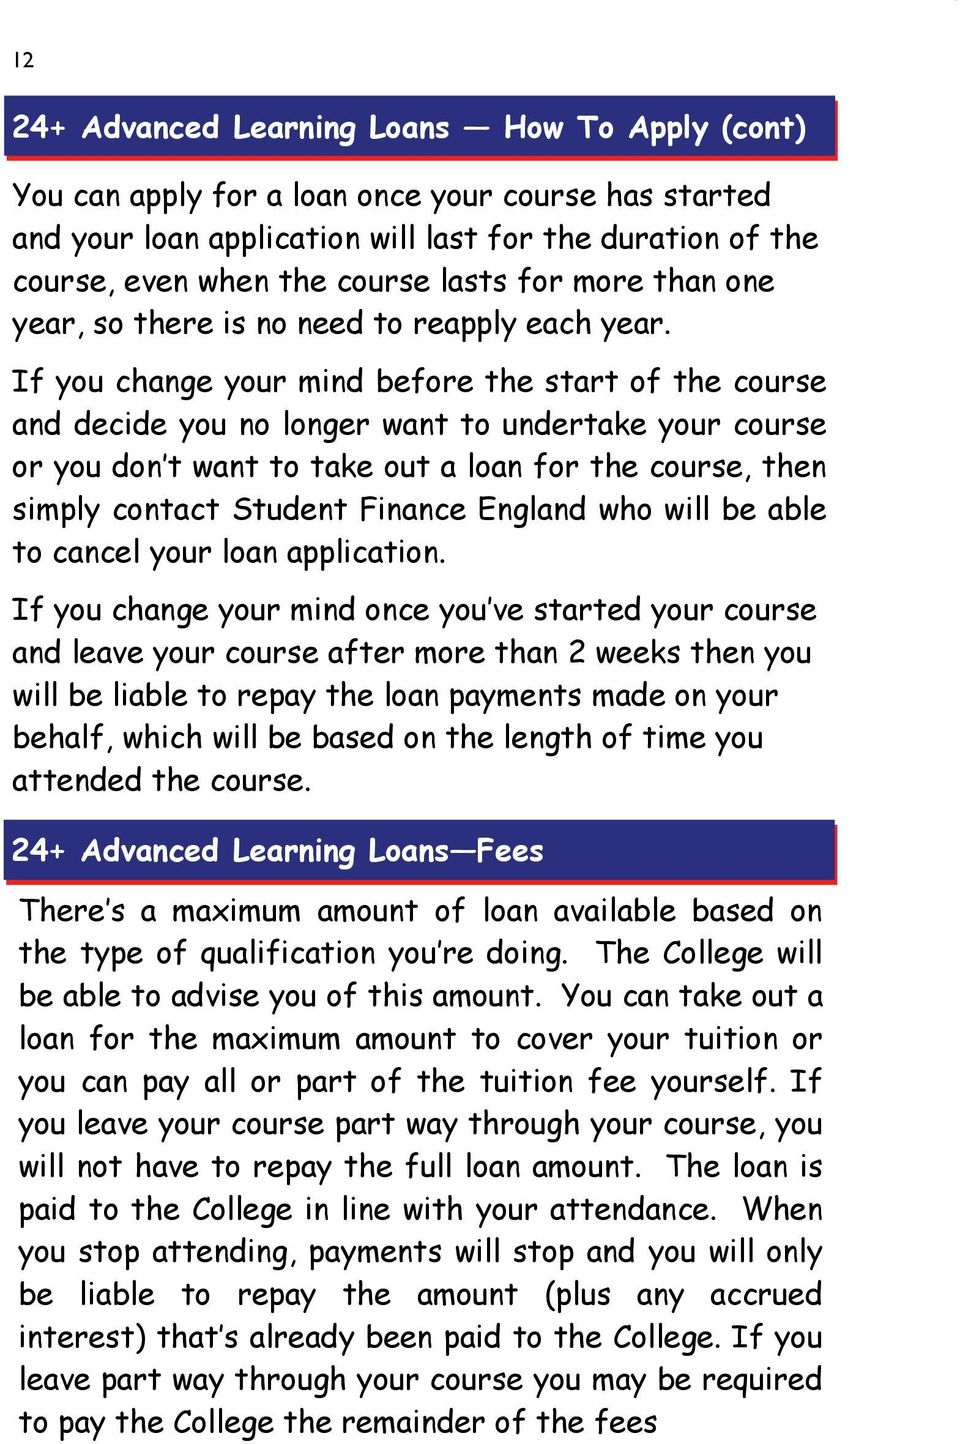 If you change your mind before the start of the course and decide you no longer want to undertake your course or you don t want to take out a loan for the course, then simply contact Student Finance